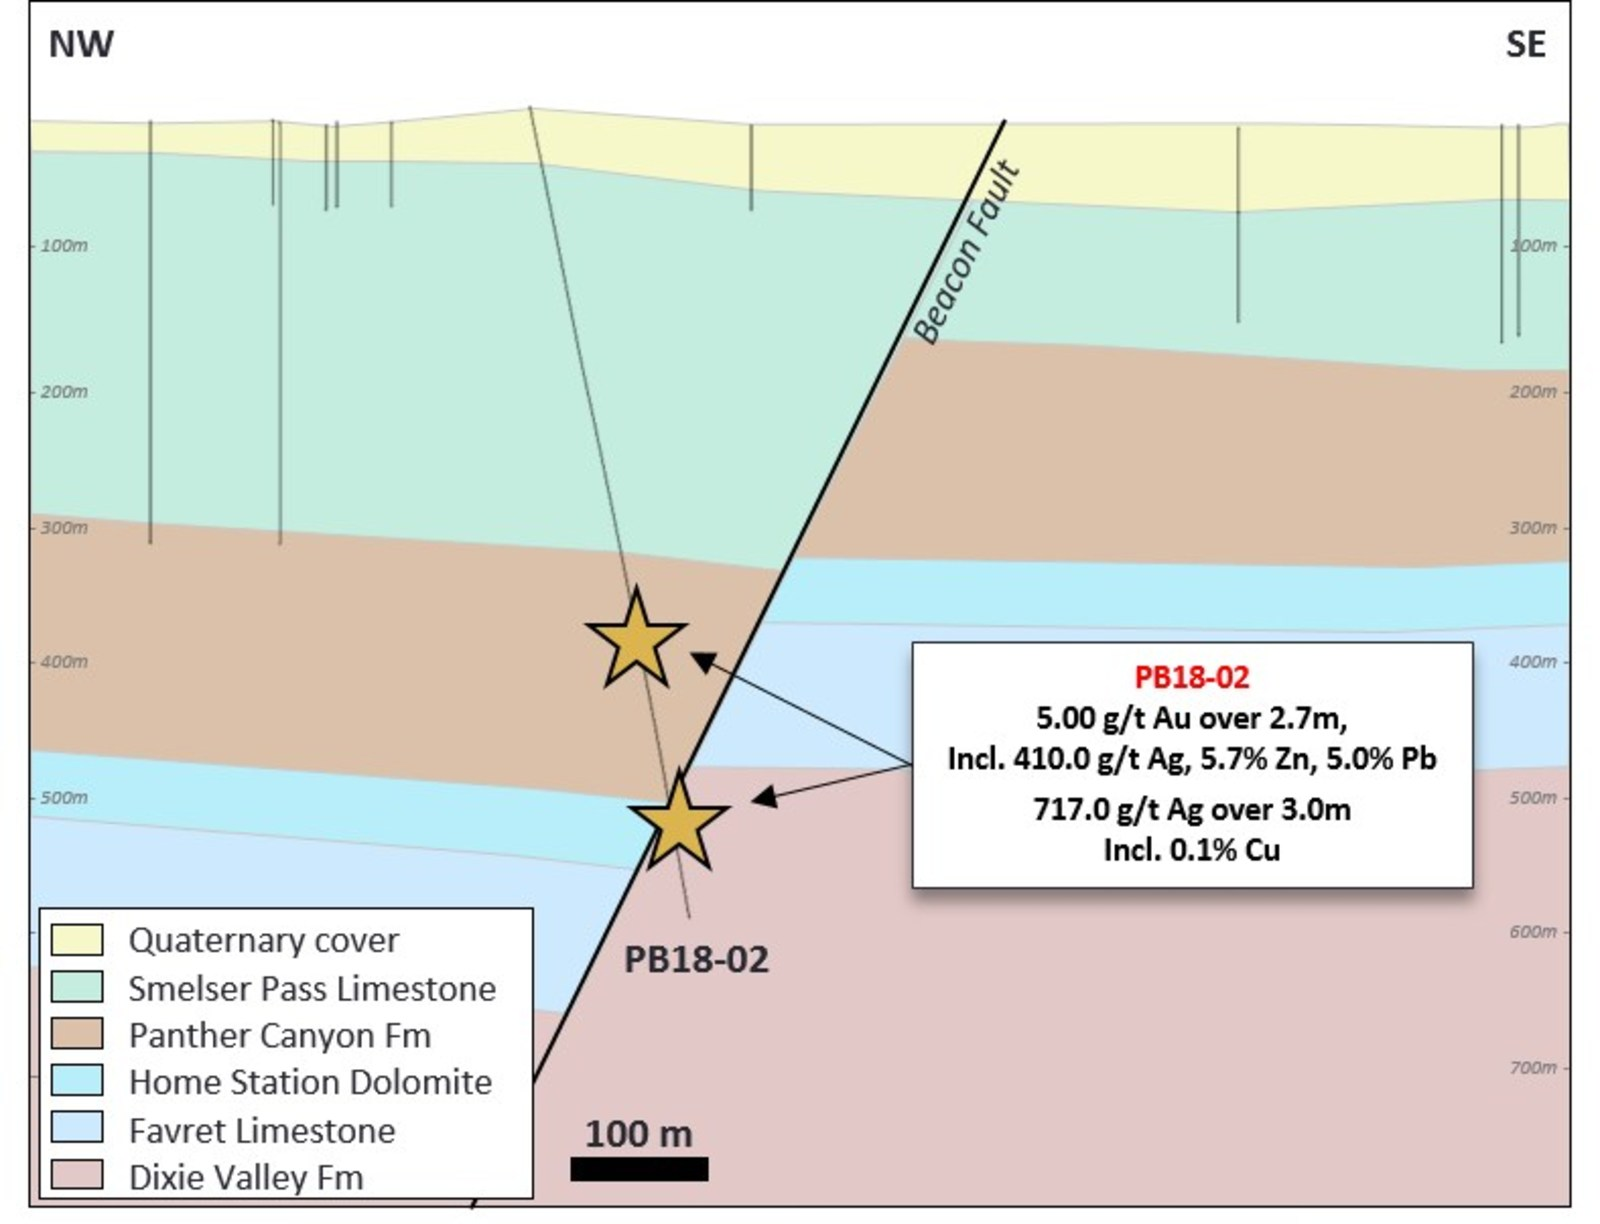 Figure 2 – Section view of hole PB18-02